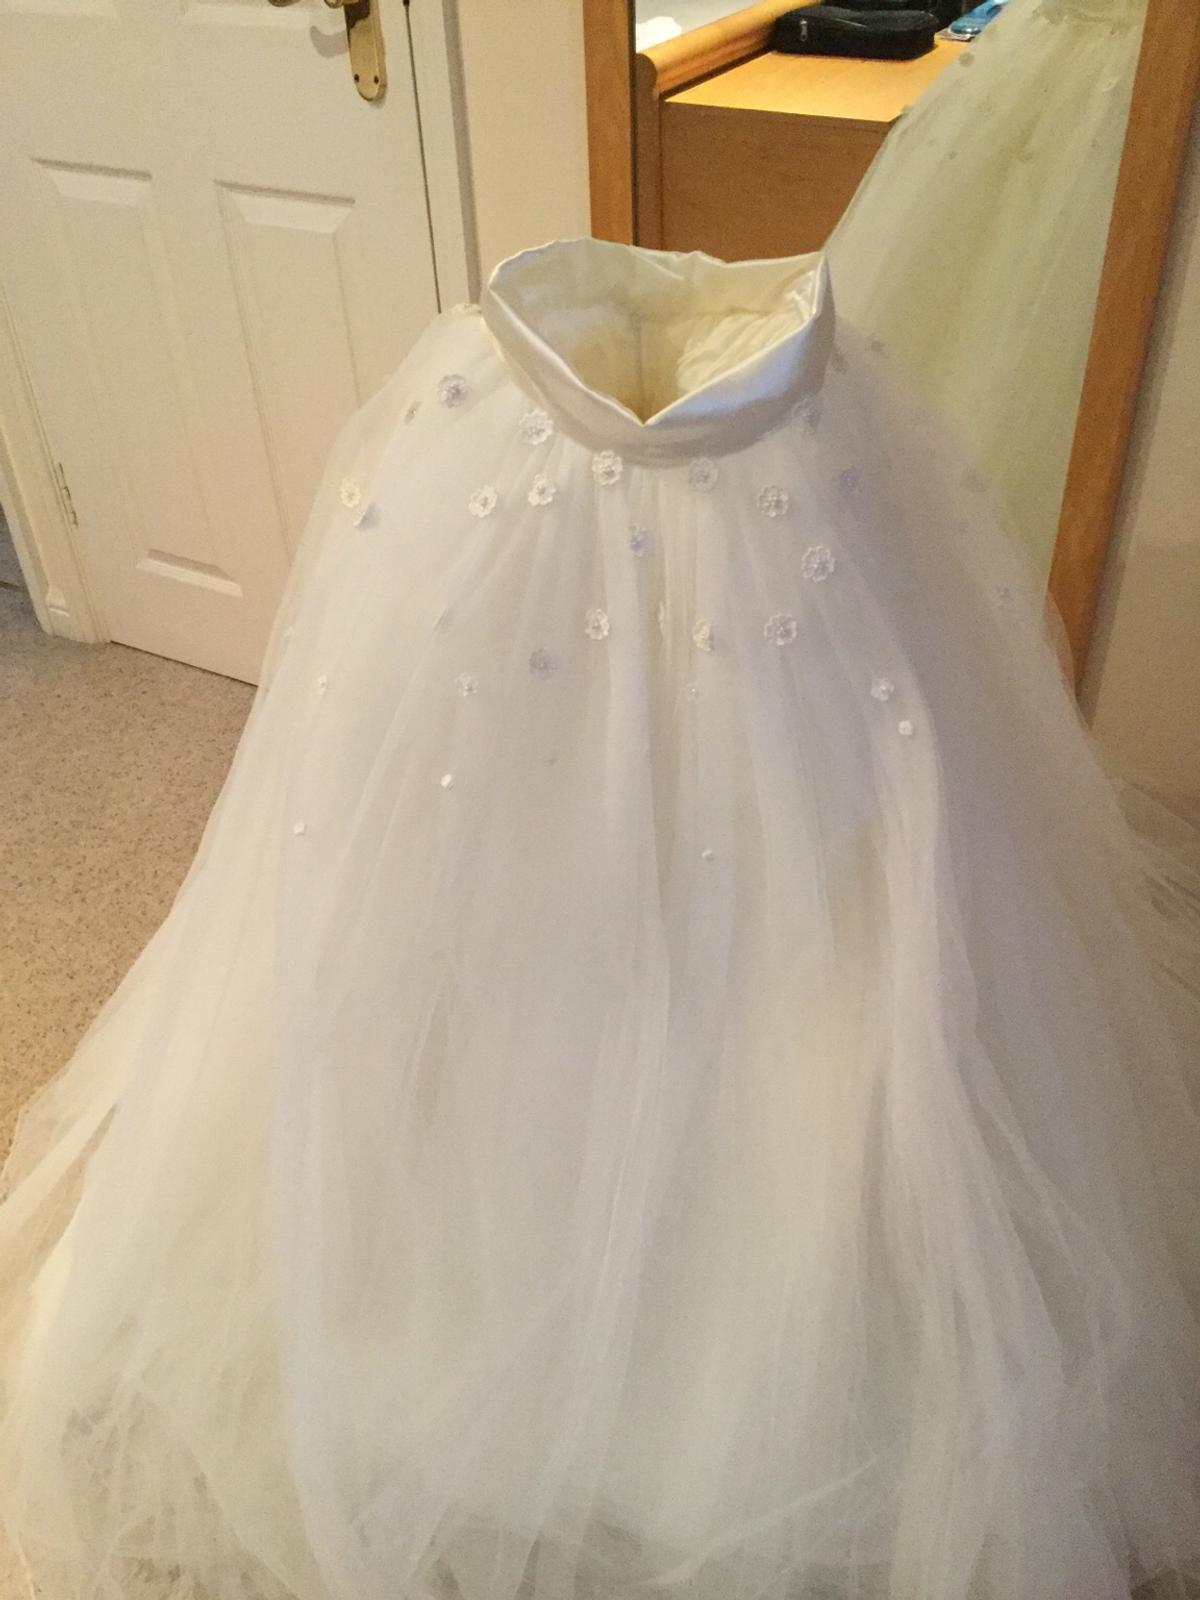 A bespoke designed full tulle net wedding skirt ,detachable train and matching veil. Made for a size 8 bride 5ft 6 inches tall in a moderate heel. Can be worn as a complete wedding day outfit with any blouse/ basque top. Hand embellished with cascading flowers over the skirt and veil. Stunningly feminine. Comes blessed from a very happy marriage of many years. Complete with cotton clothes protector and waterproof dust cover.